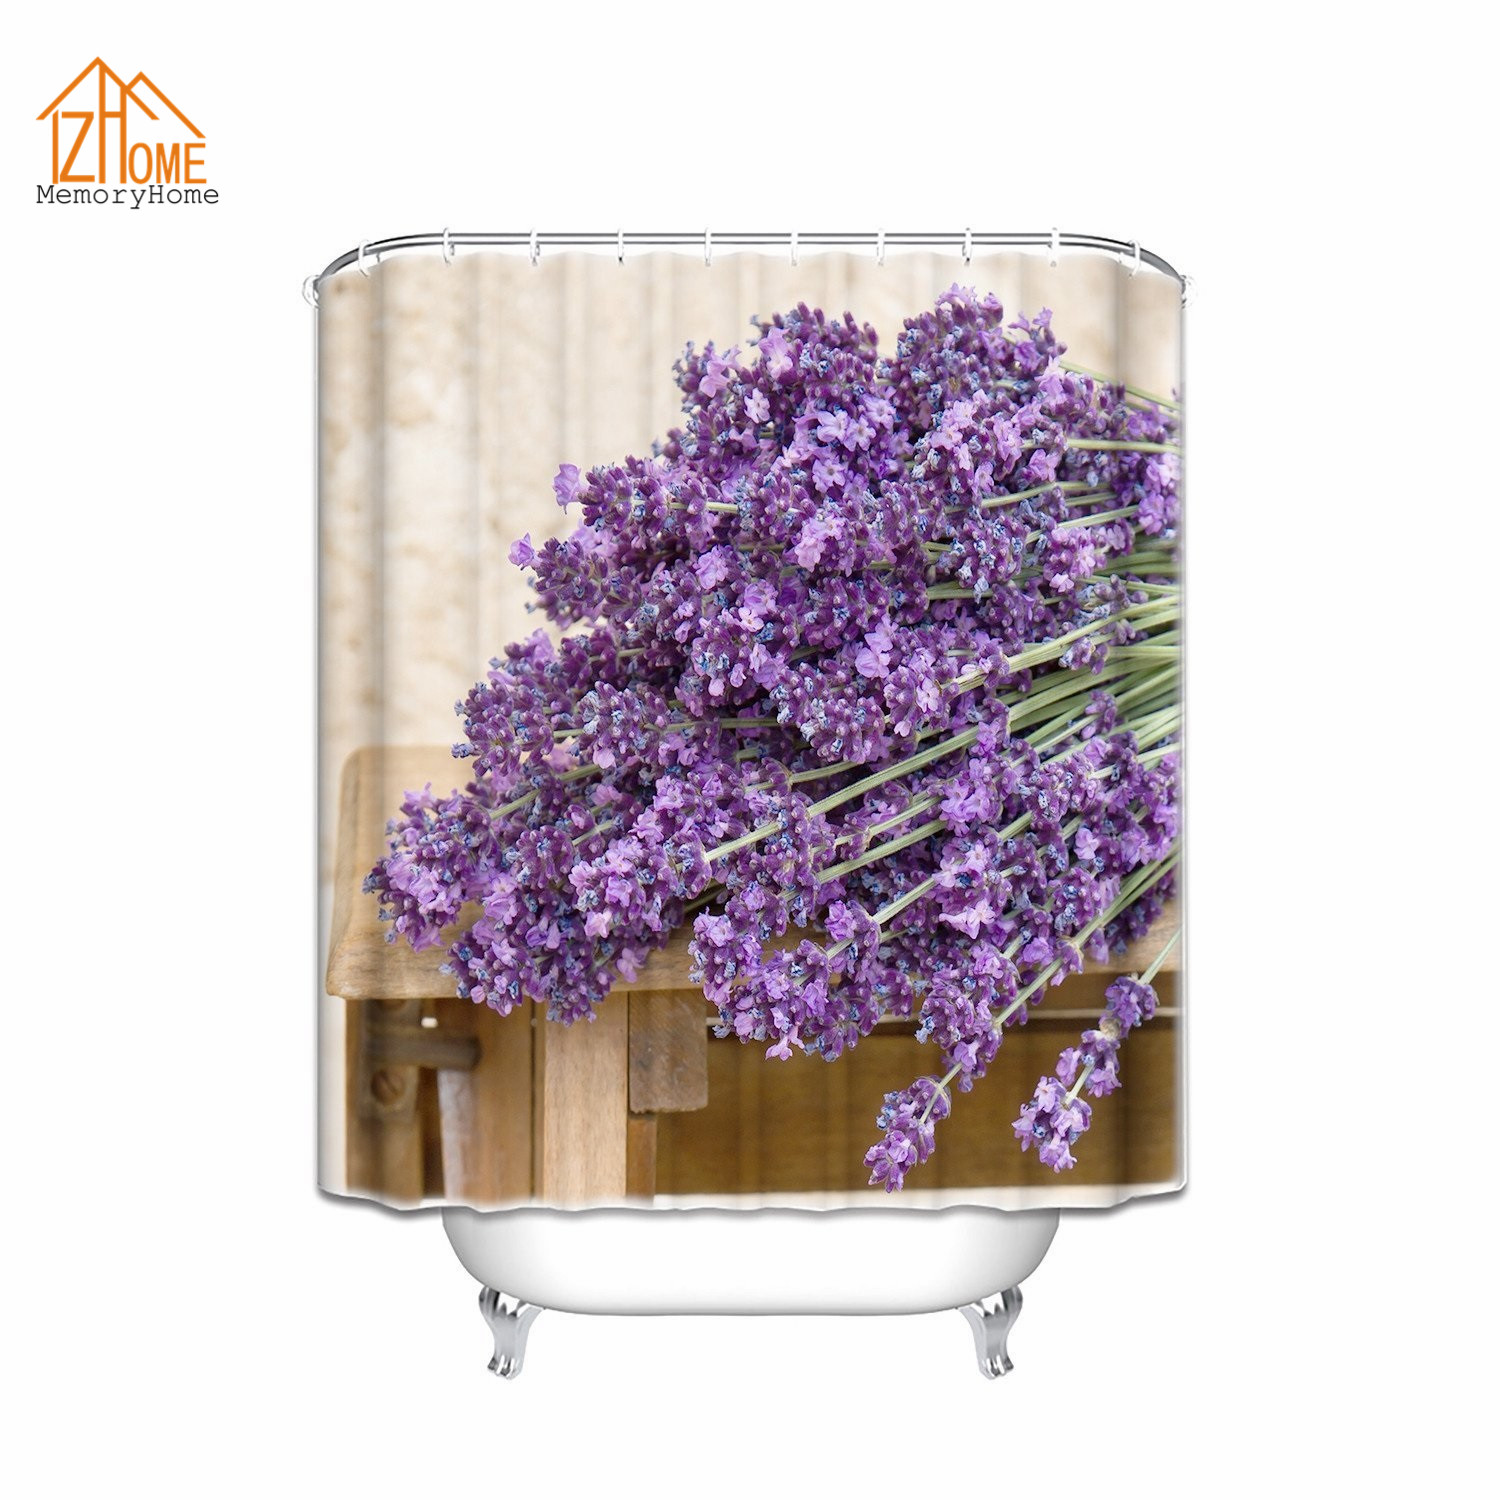 memory home customized shower curtain bouquet of purple lavender flowers bathroom curtains waterproof polyester fabric